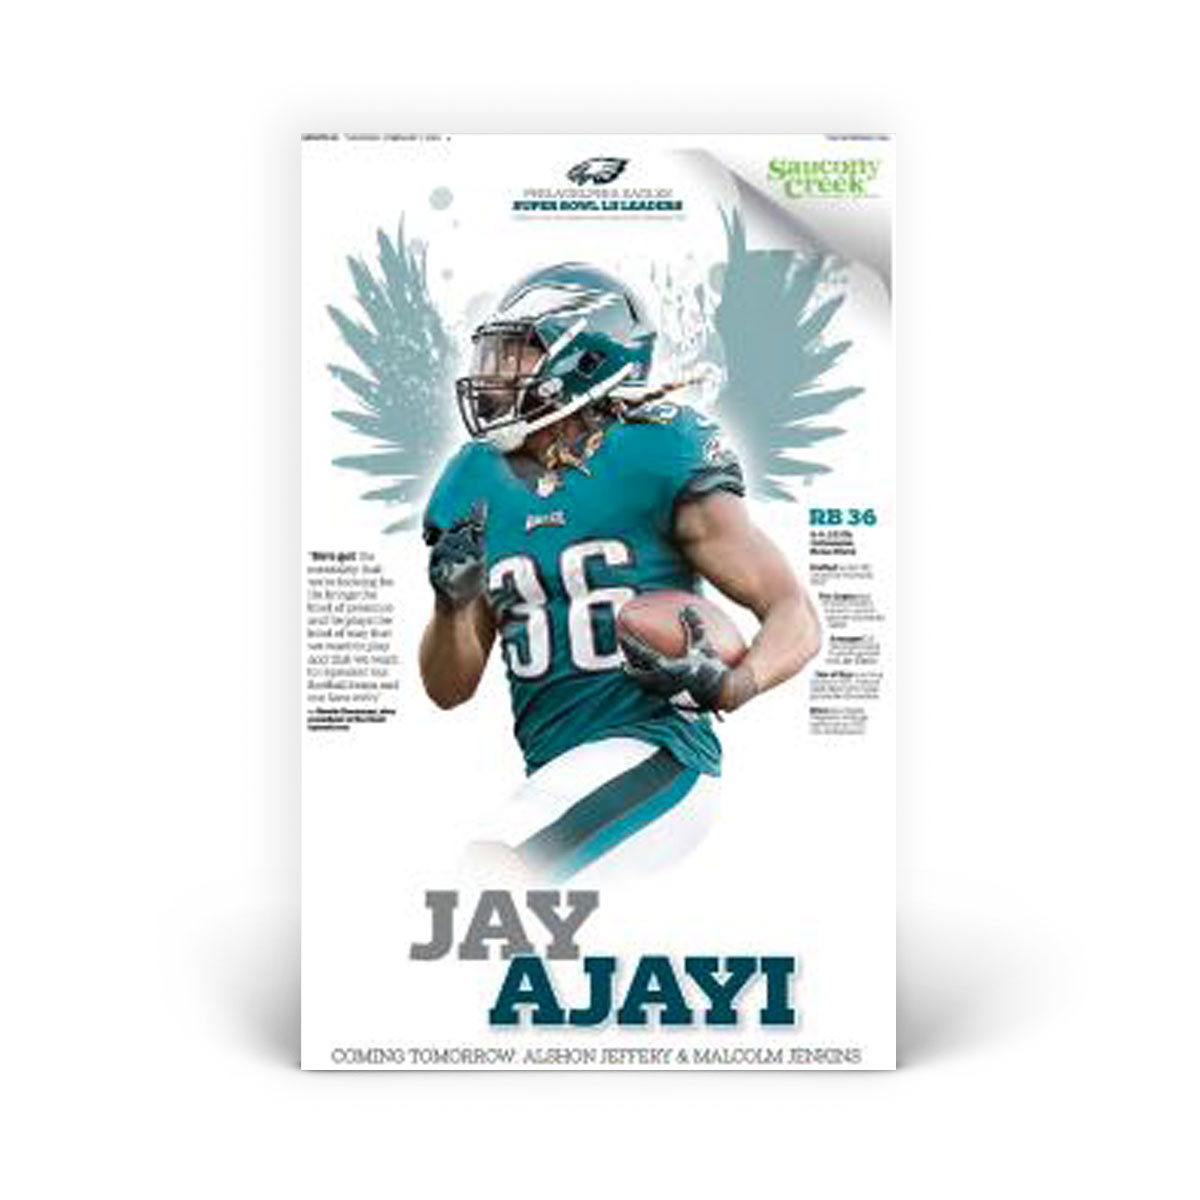 Jay Ajayi Philadelphia Eagles Player Print 2/01/2018